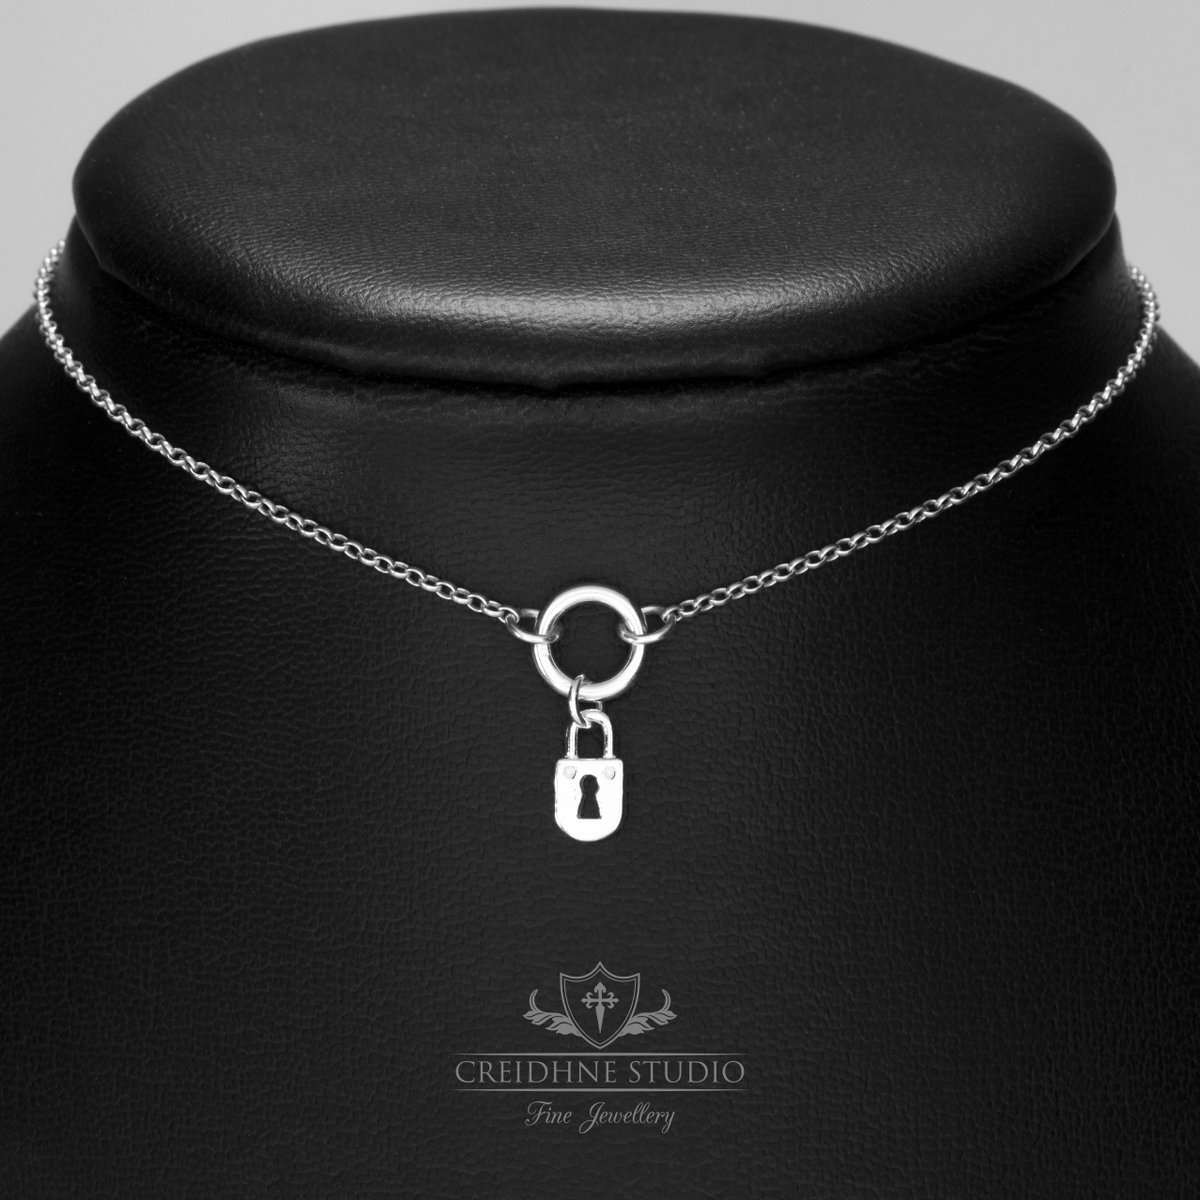 Tiny Ring Padlock Charm Day Collar, Sterling Silver, delicate and discreet day collar BUY NOW:  https://buff.ly/35Q4teA SHOP: https://buff.ly/2R2mFKC  #goth #padlock #alternativefashion #gothicstyle #sterlingsilverjewelry #gothicfashion #altstyle #necklace #daycollar #ddlgcollarpic.twitter.com/MF6lxRnggK